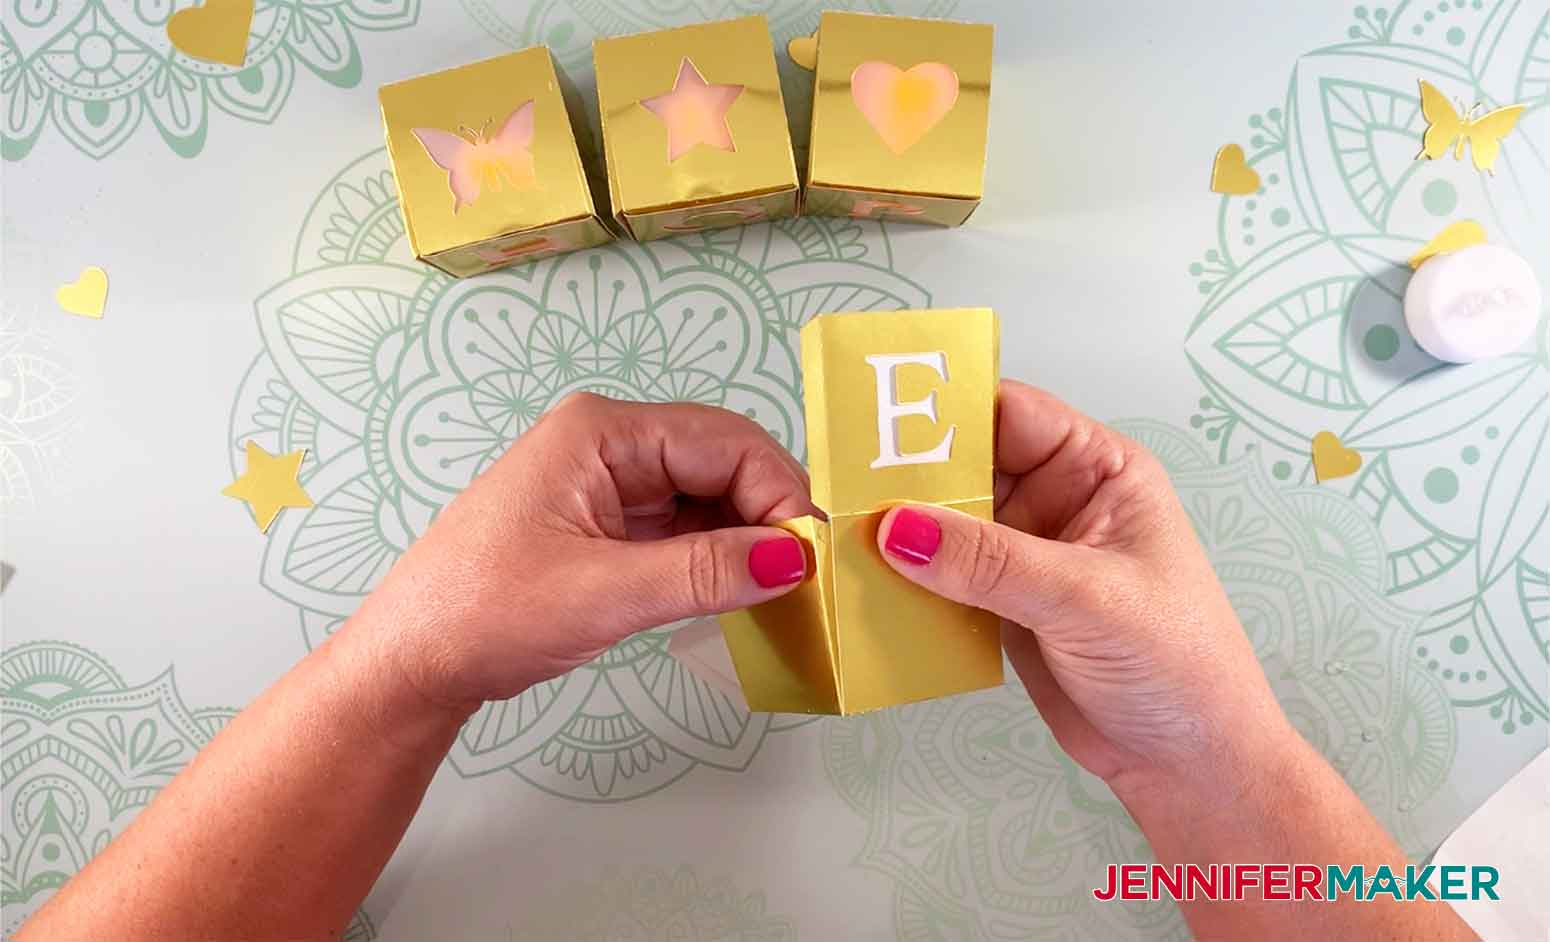 HOPE-Light-Up-Letter-Blocks-JenniferMaker-Pressing-Block-Together